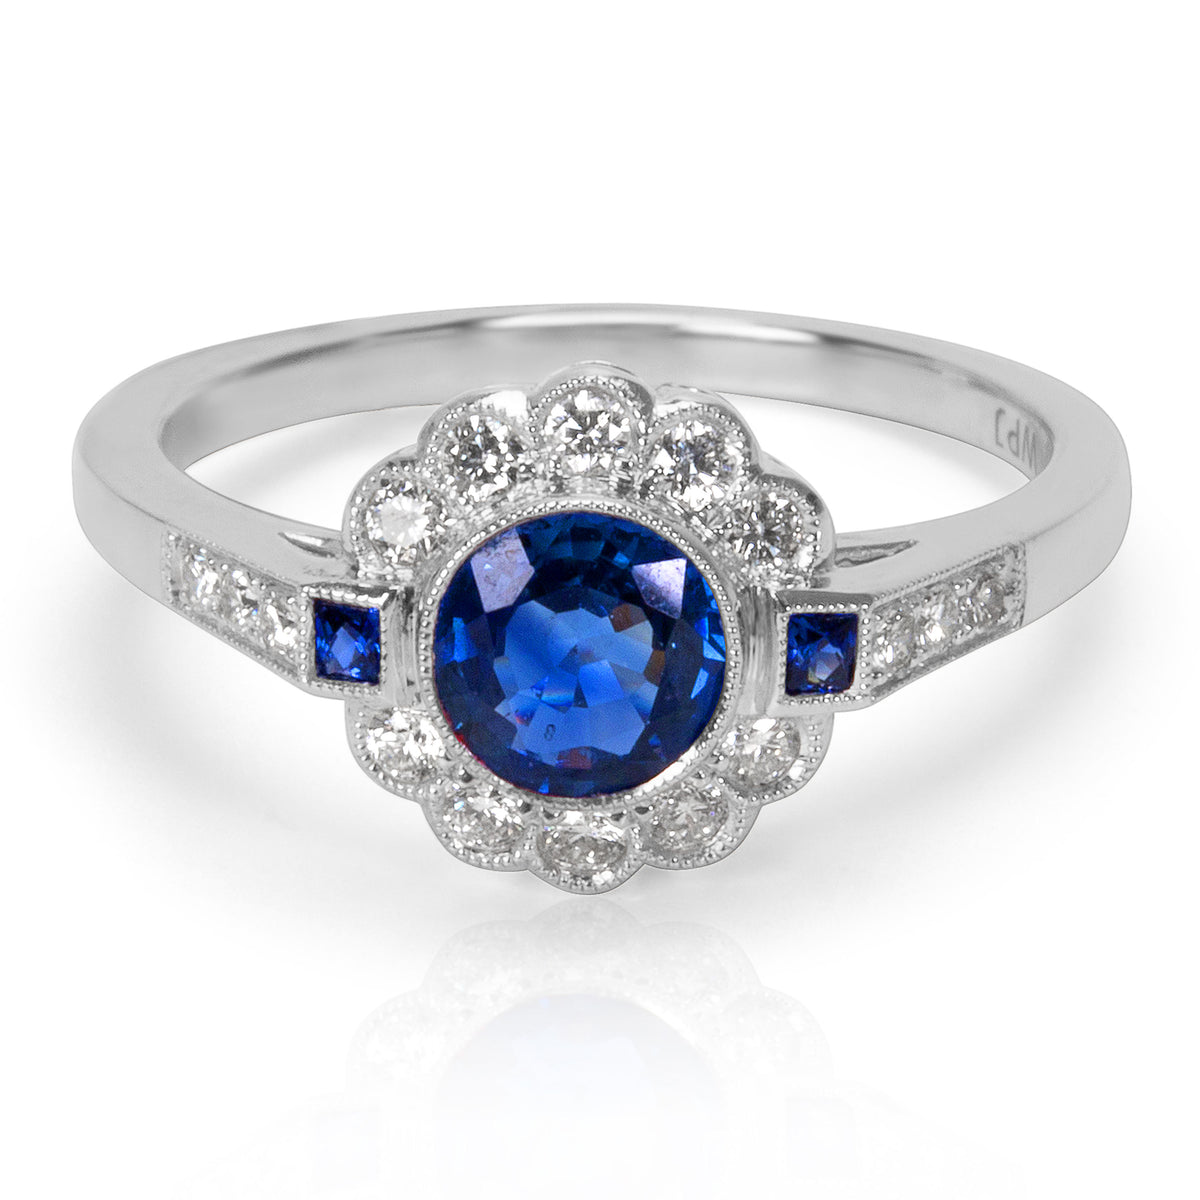 BRAND NEW Sapphire and Diamond Vintage Style Ring in 18K White Gold (0.25 CTW)